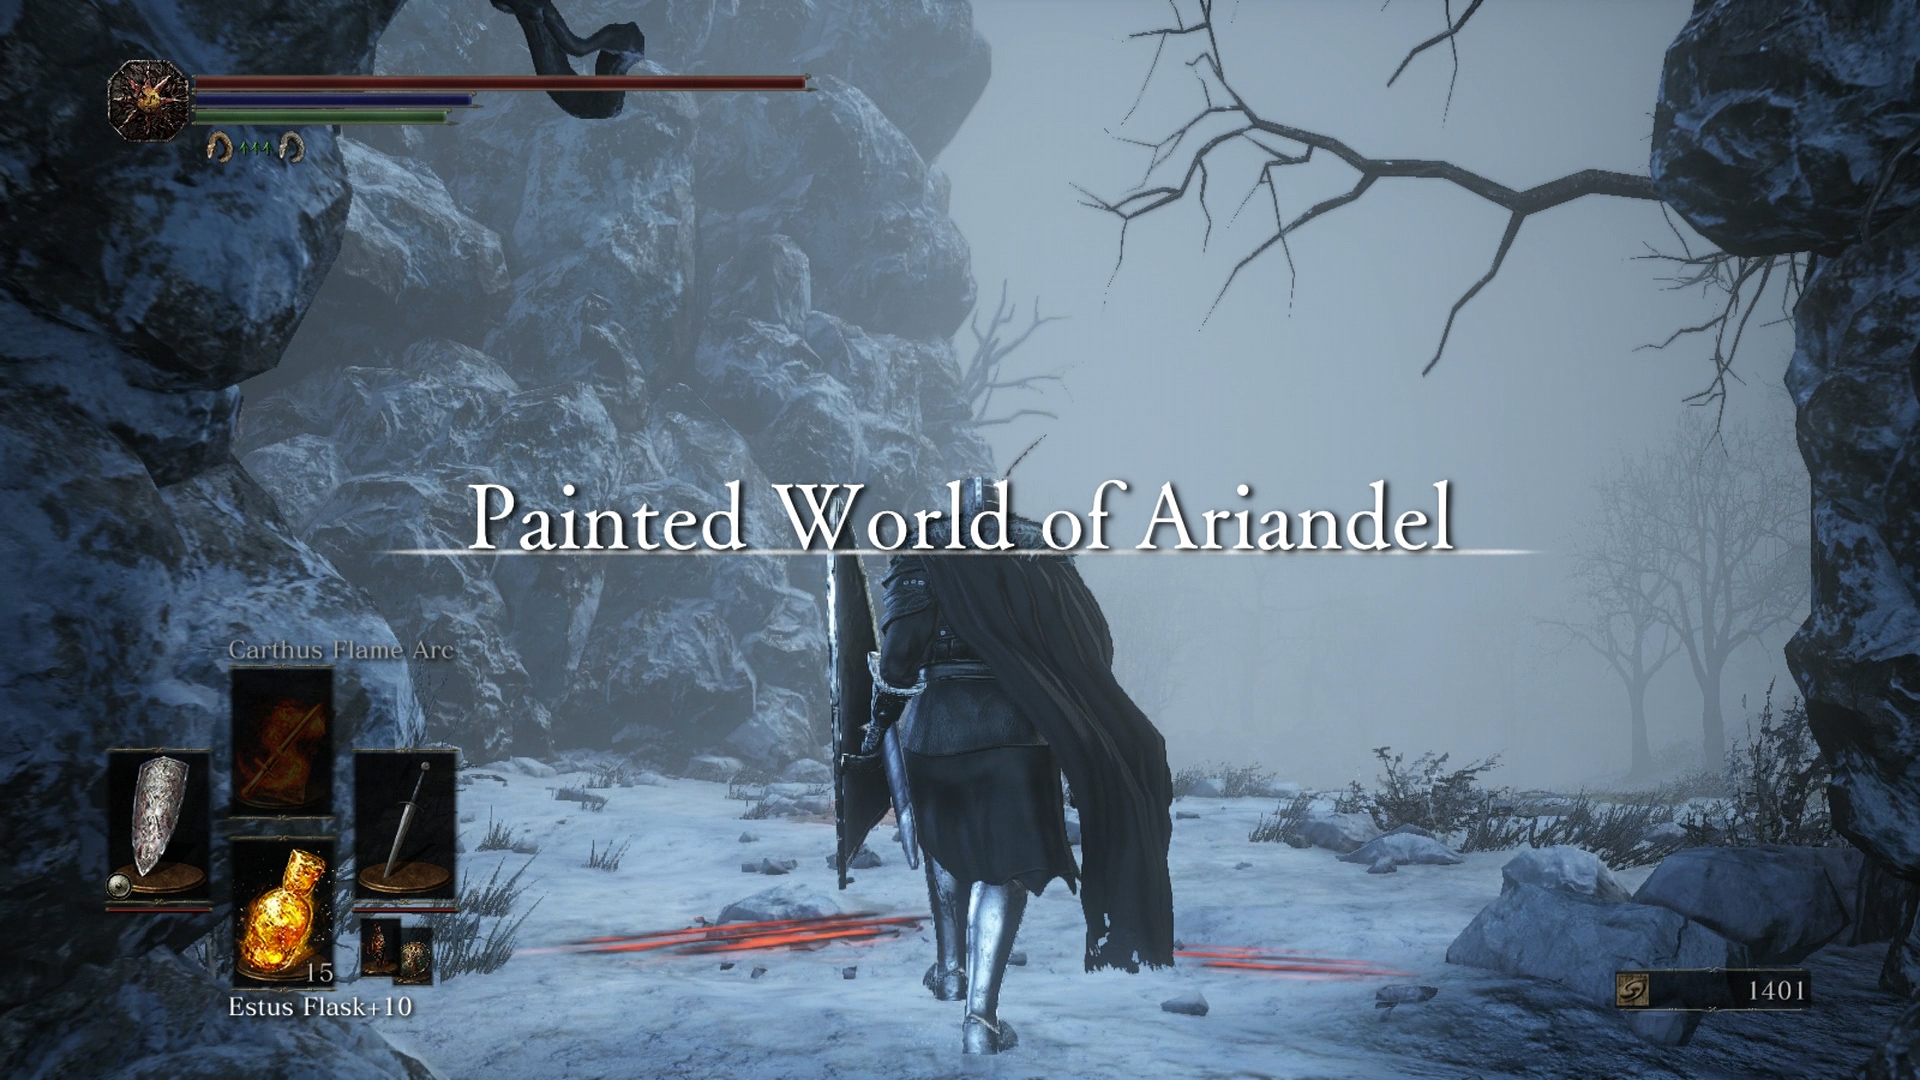 And now into the unknown world of Ariandel